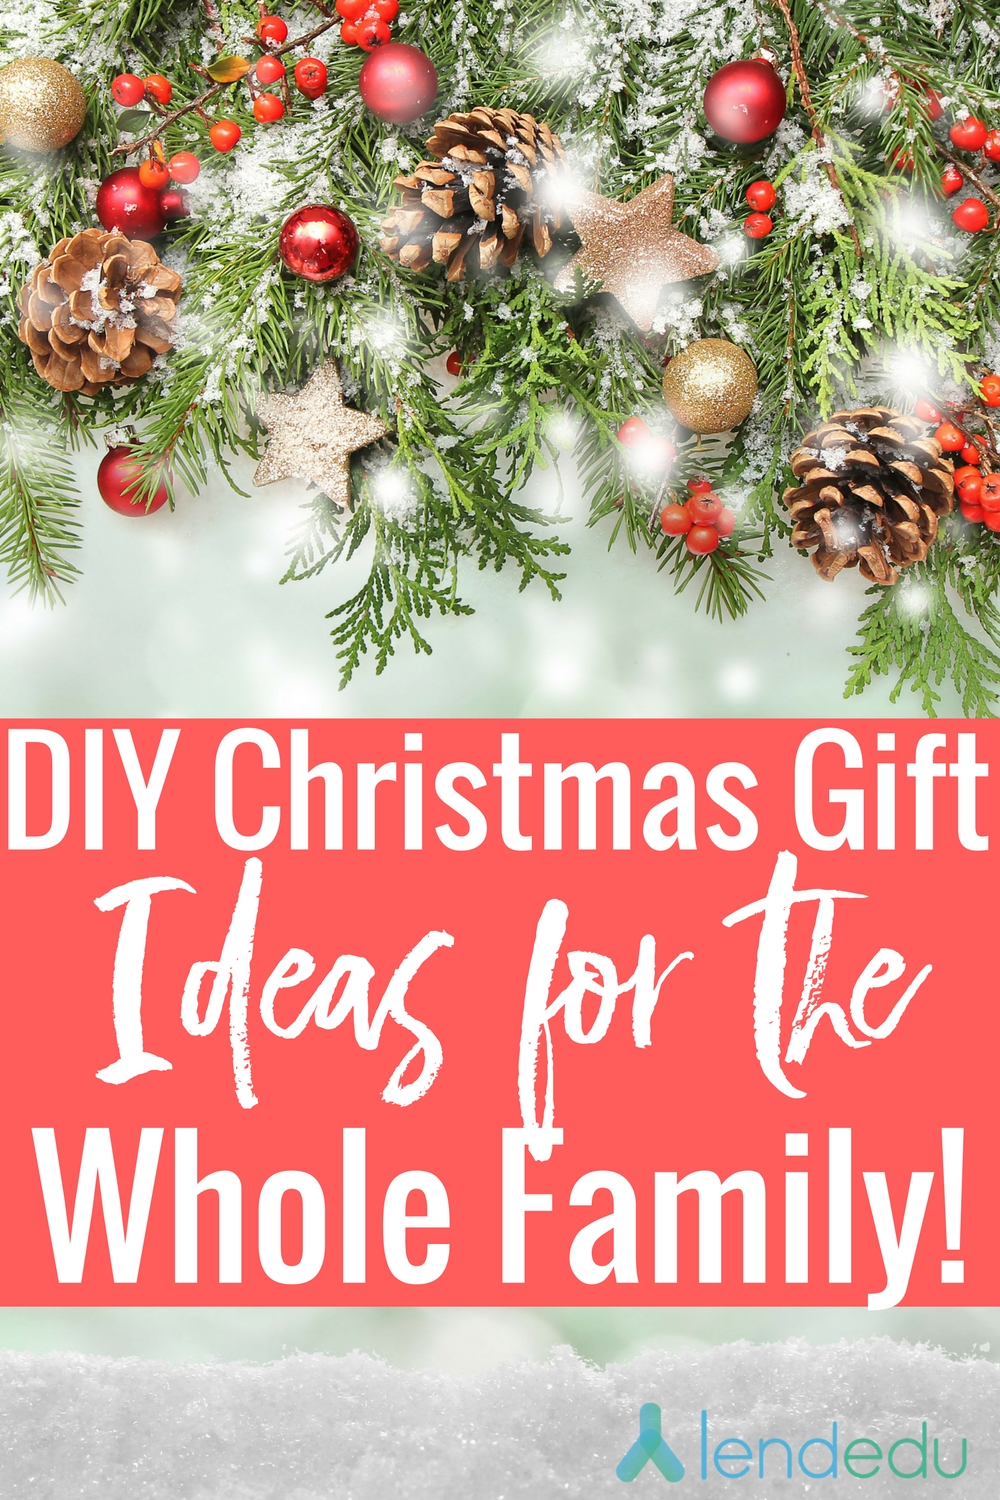 10 Ideal Whole Family Christmas Gift Ideas diy christmas gifts for the whole family lendedu 2020